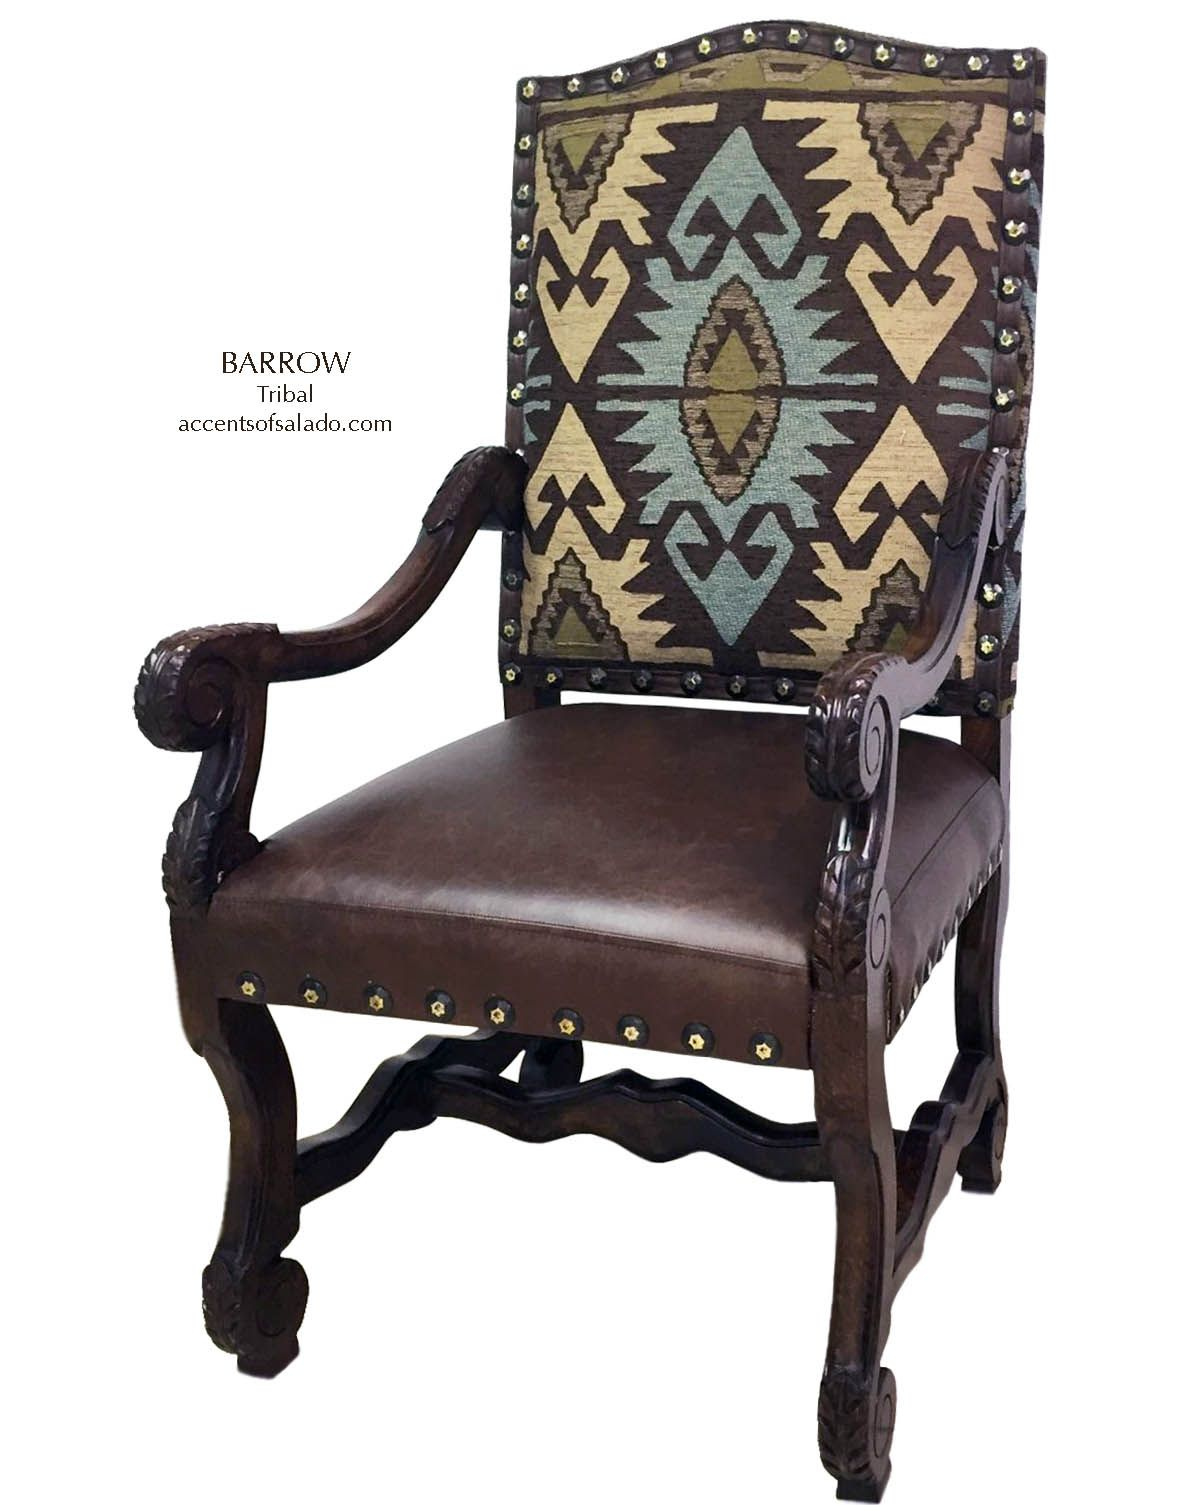 Barrow Western Dining Room Chairs Leather Dining Room Chairs Western Furniture Dining Room Chair Cushions